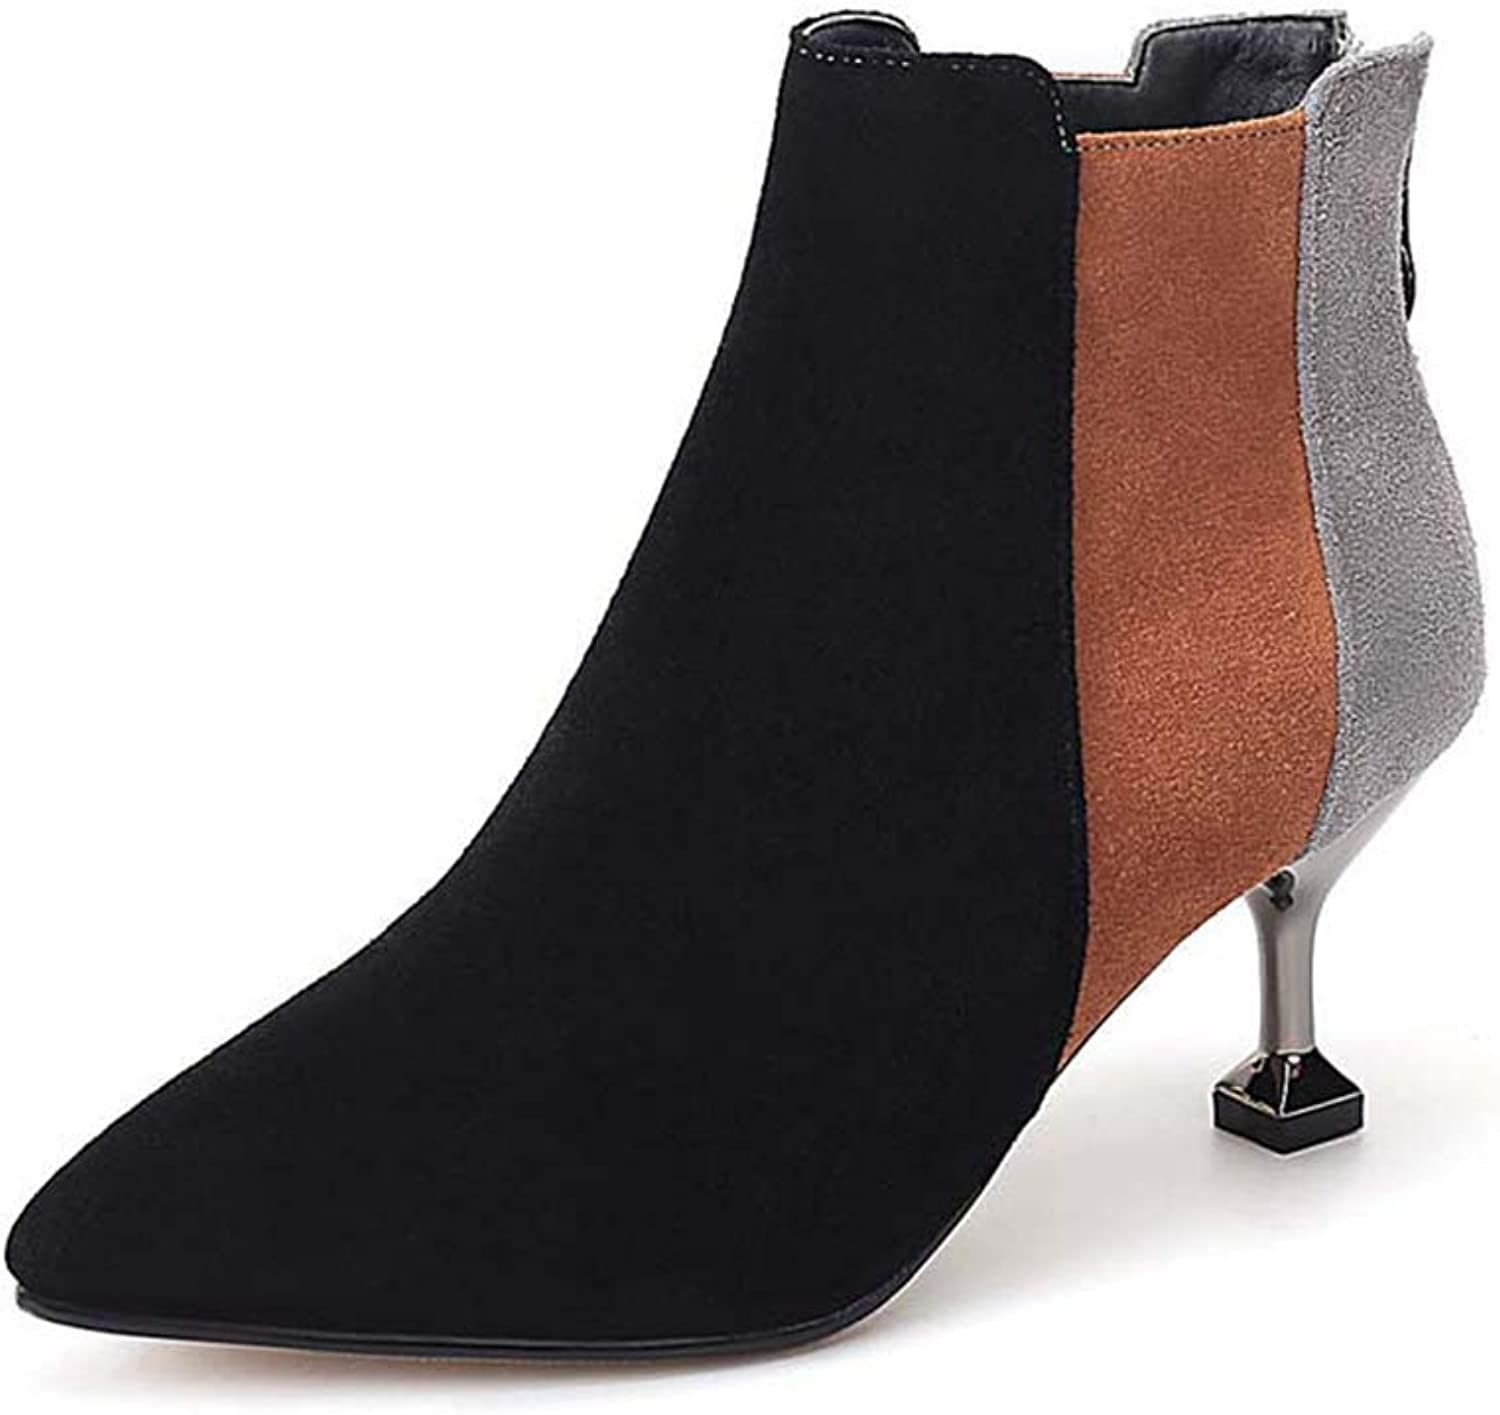 Woman Ankle Boots Back Zipper Pointed Toe Mixed color High Thin Heel Ladies Sexy Short shoes